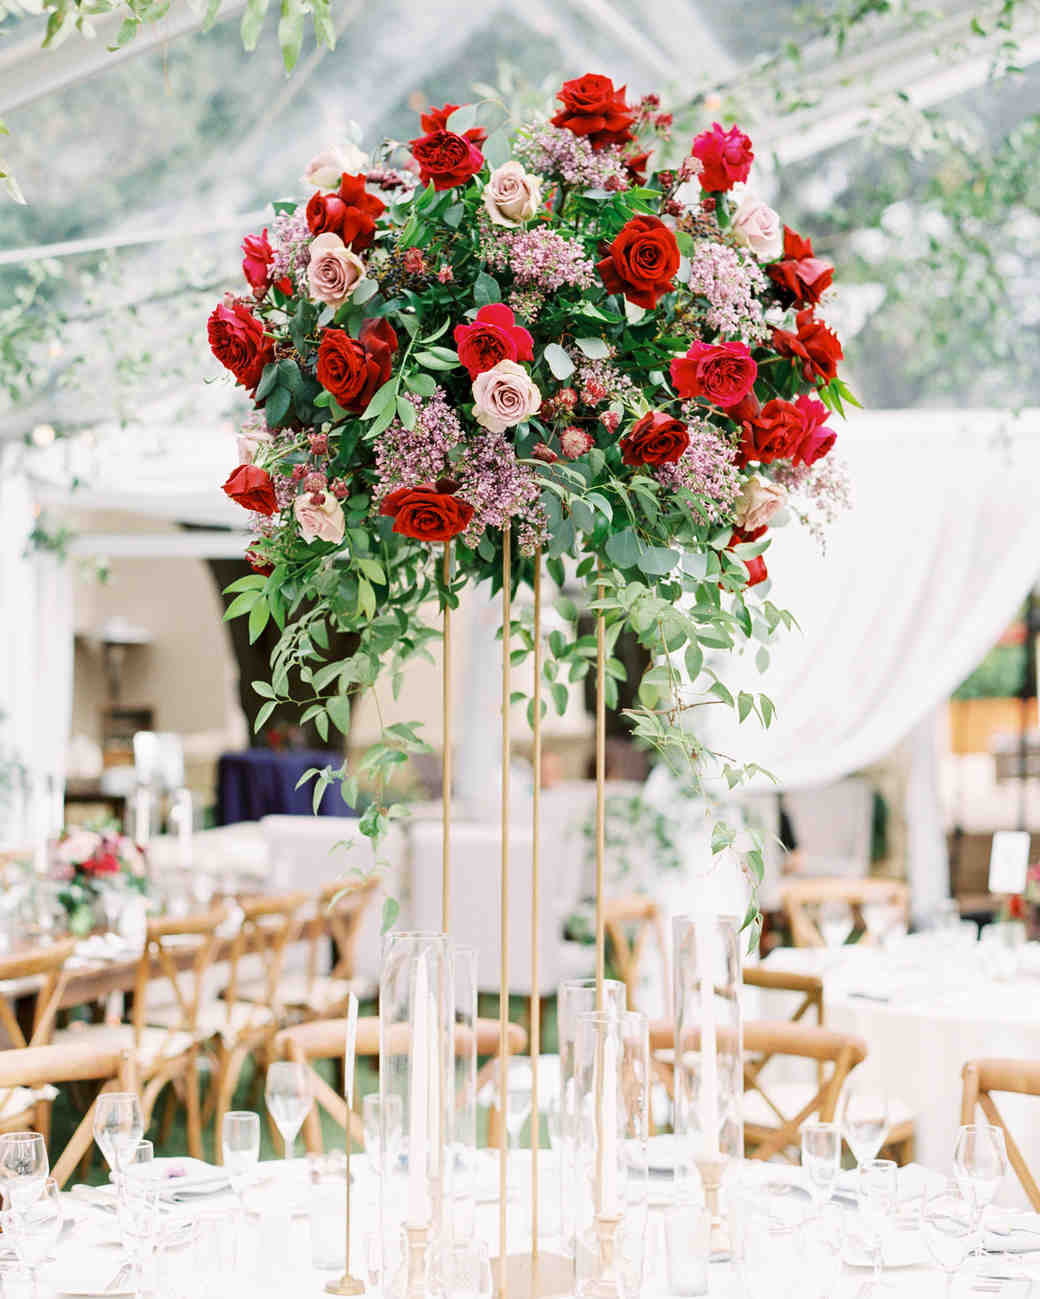 Flowers For Wedding Table Centerpieces: 29 Tall Centerpieces That Will Take Your Reception Tables